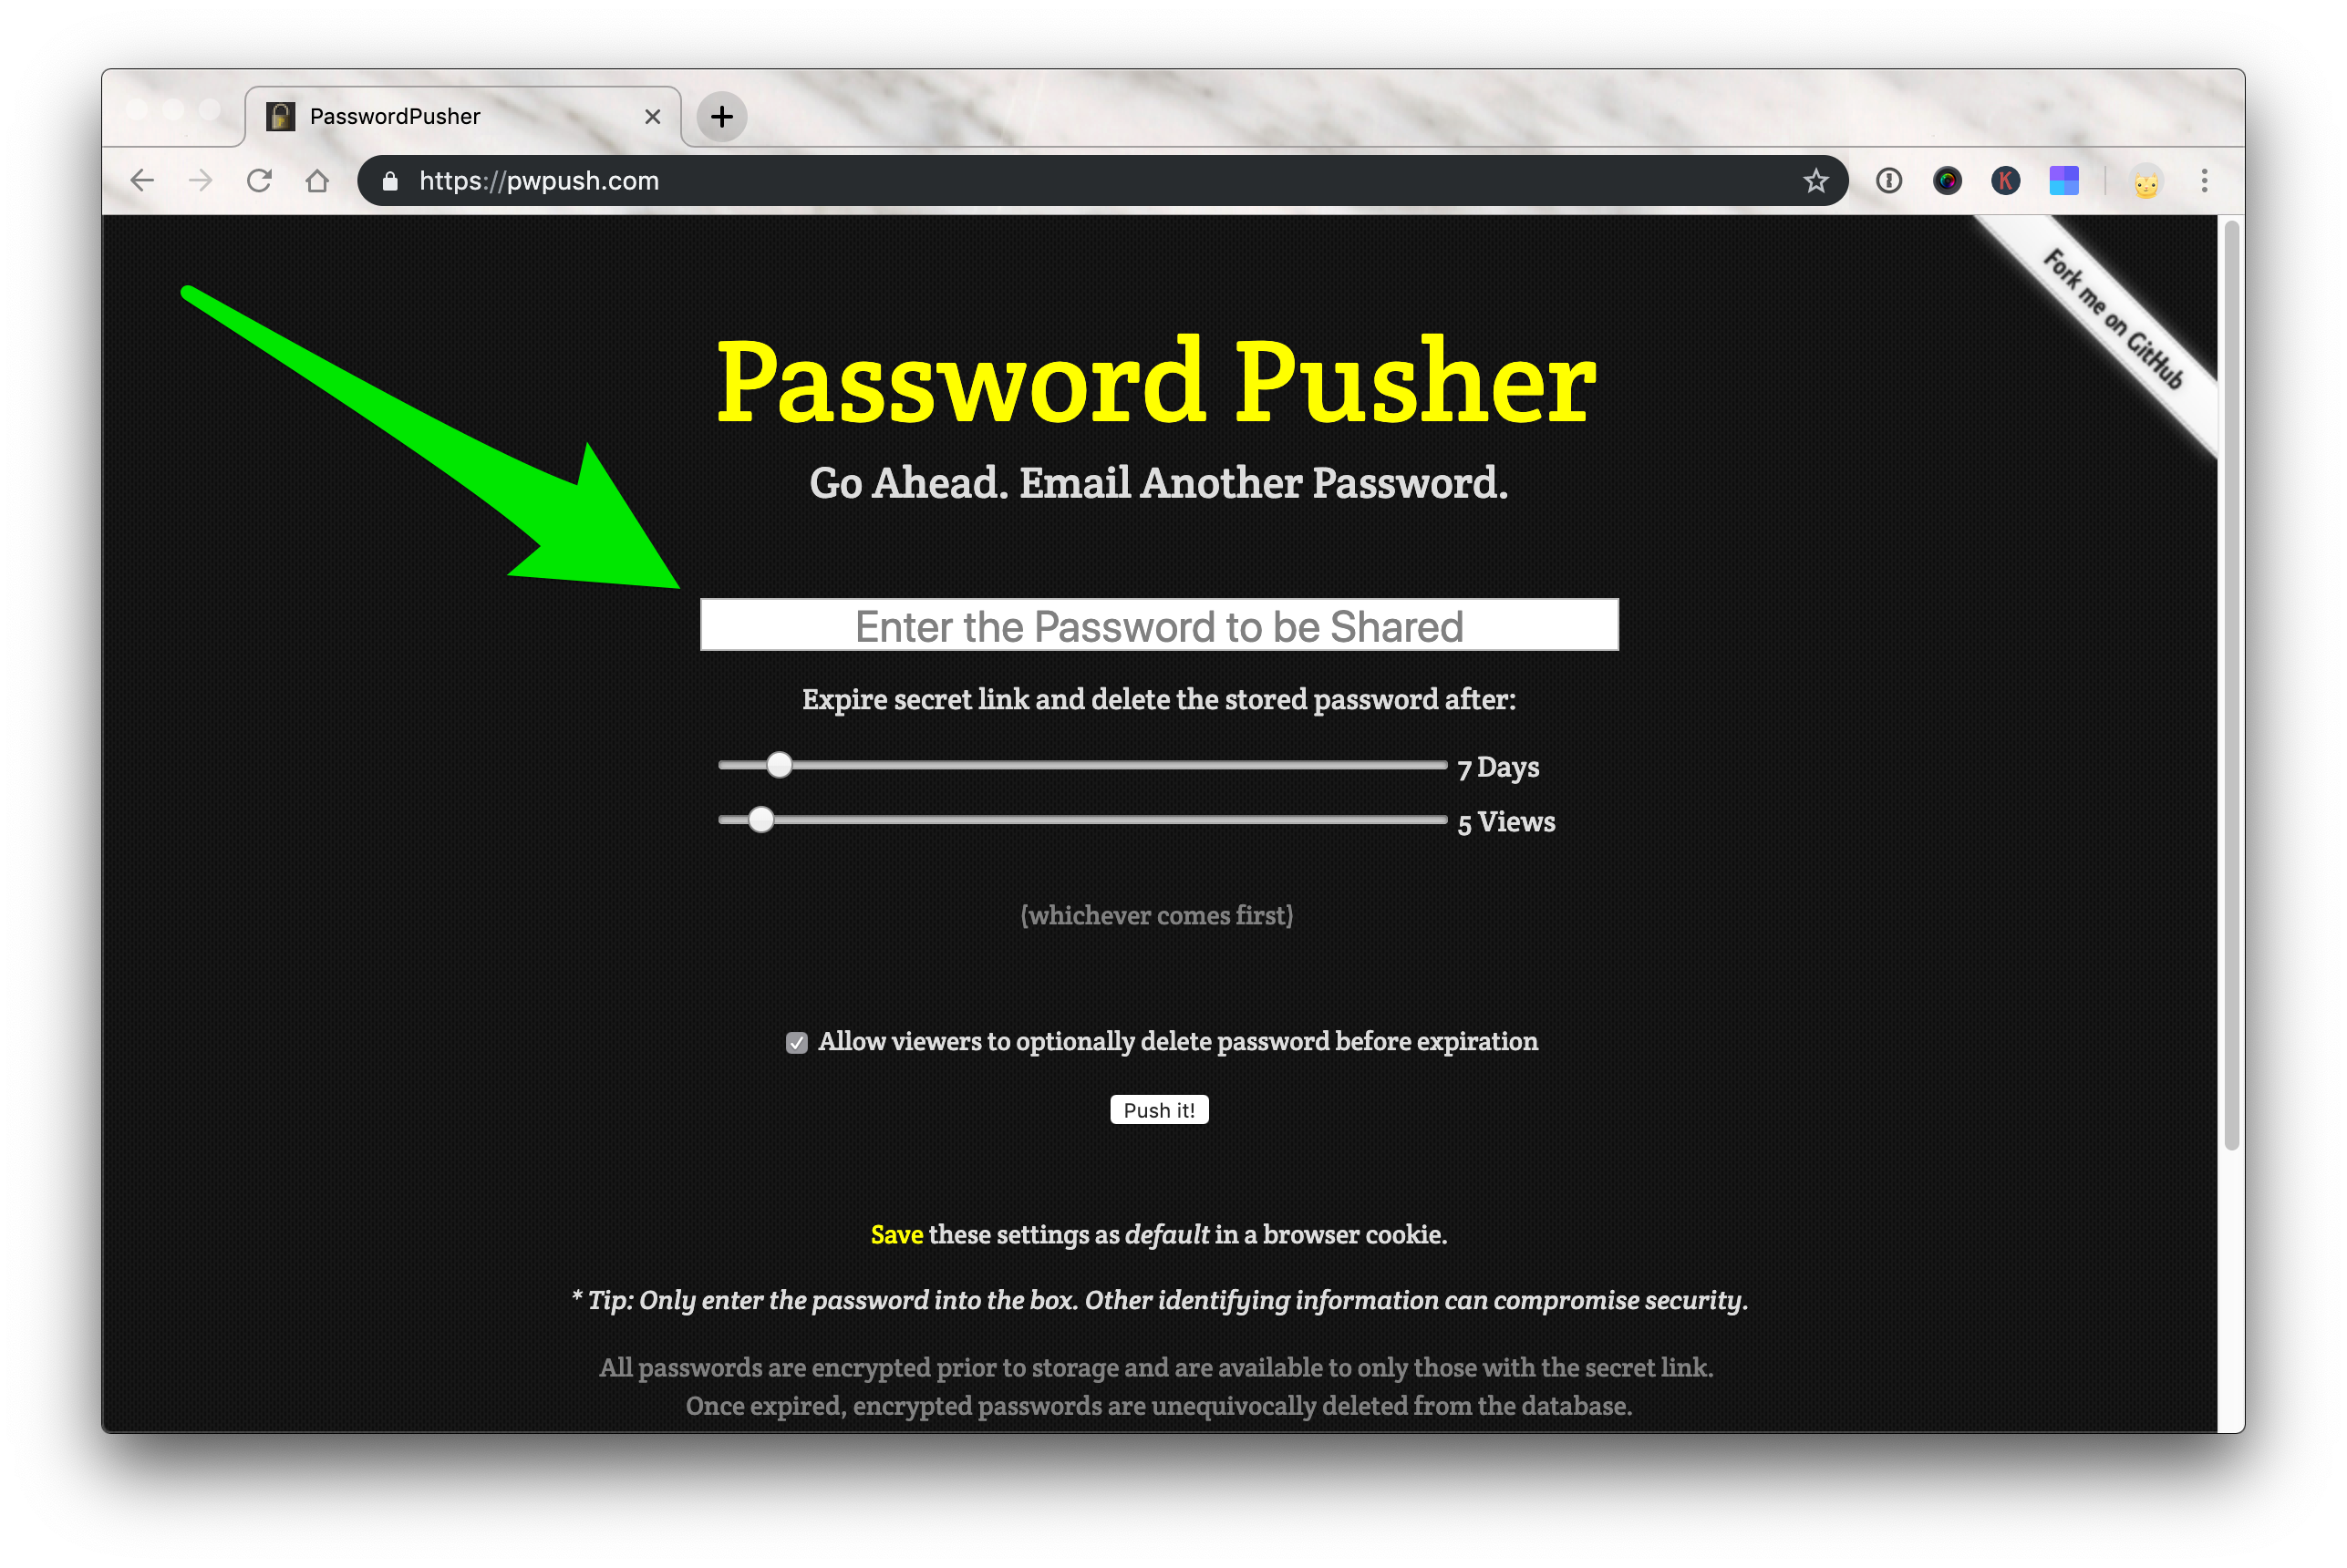 A screenshot of the Password Pusher tool